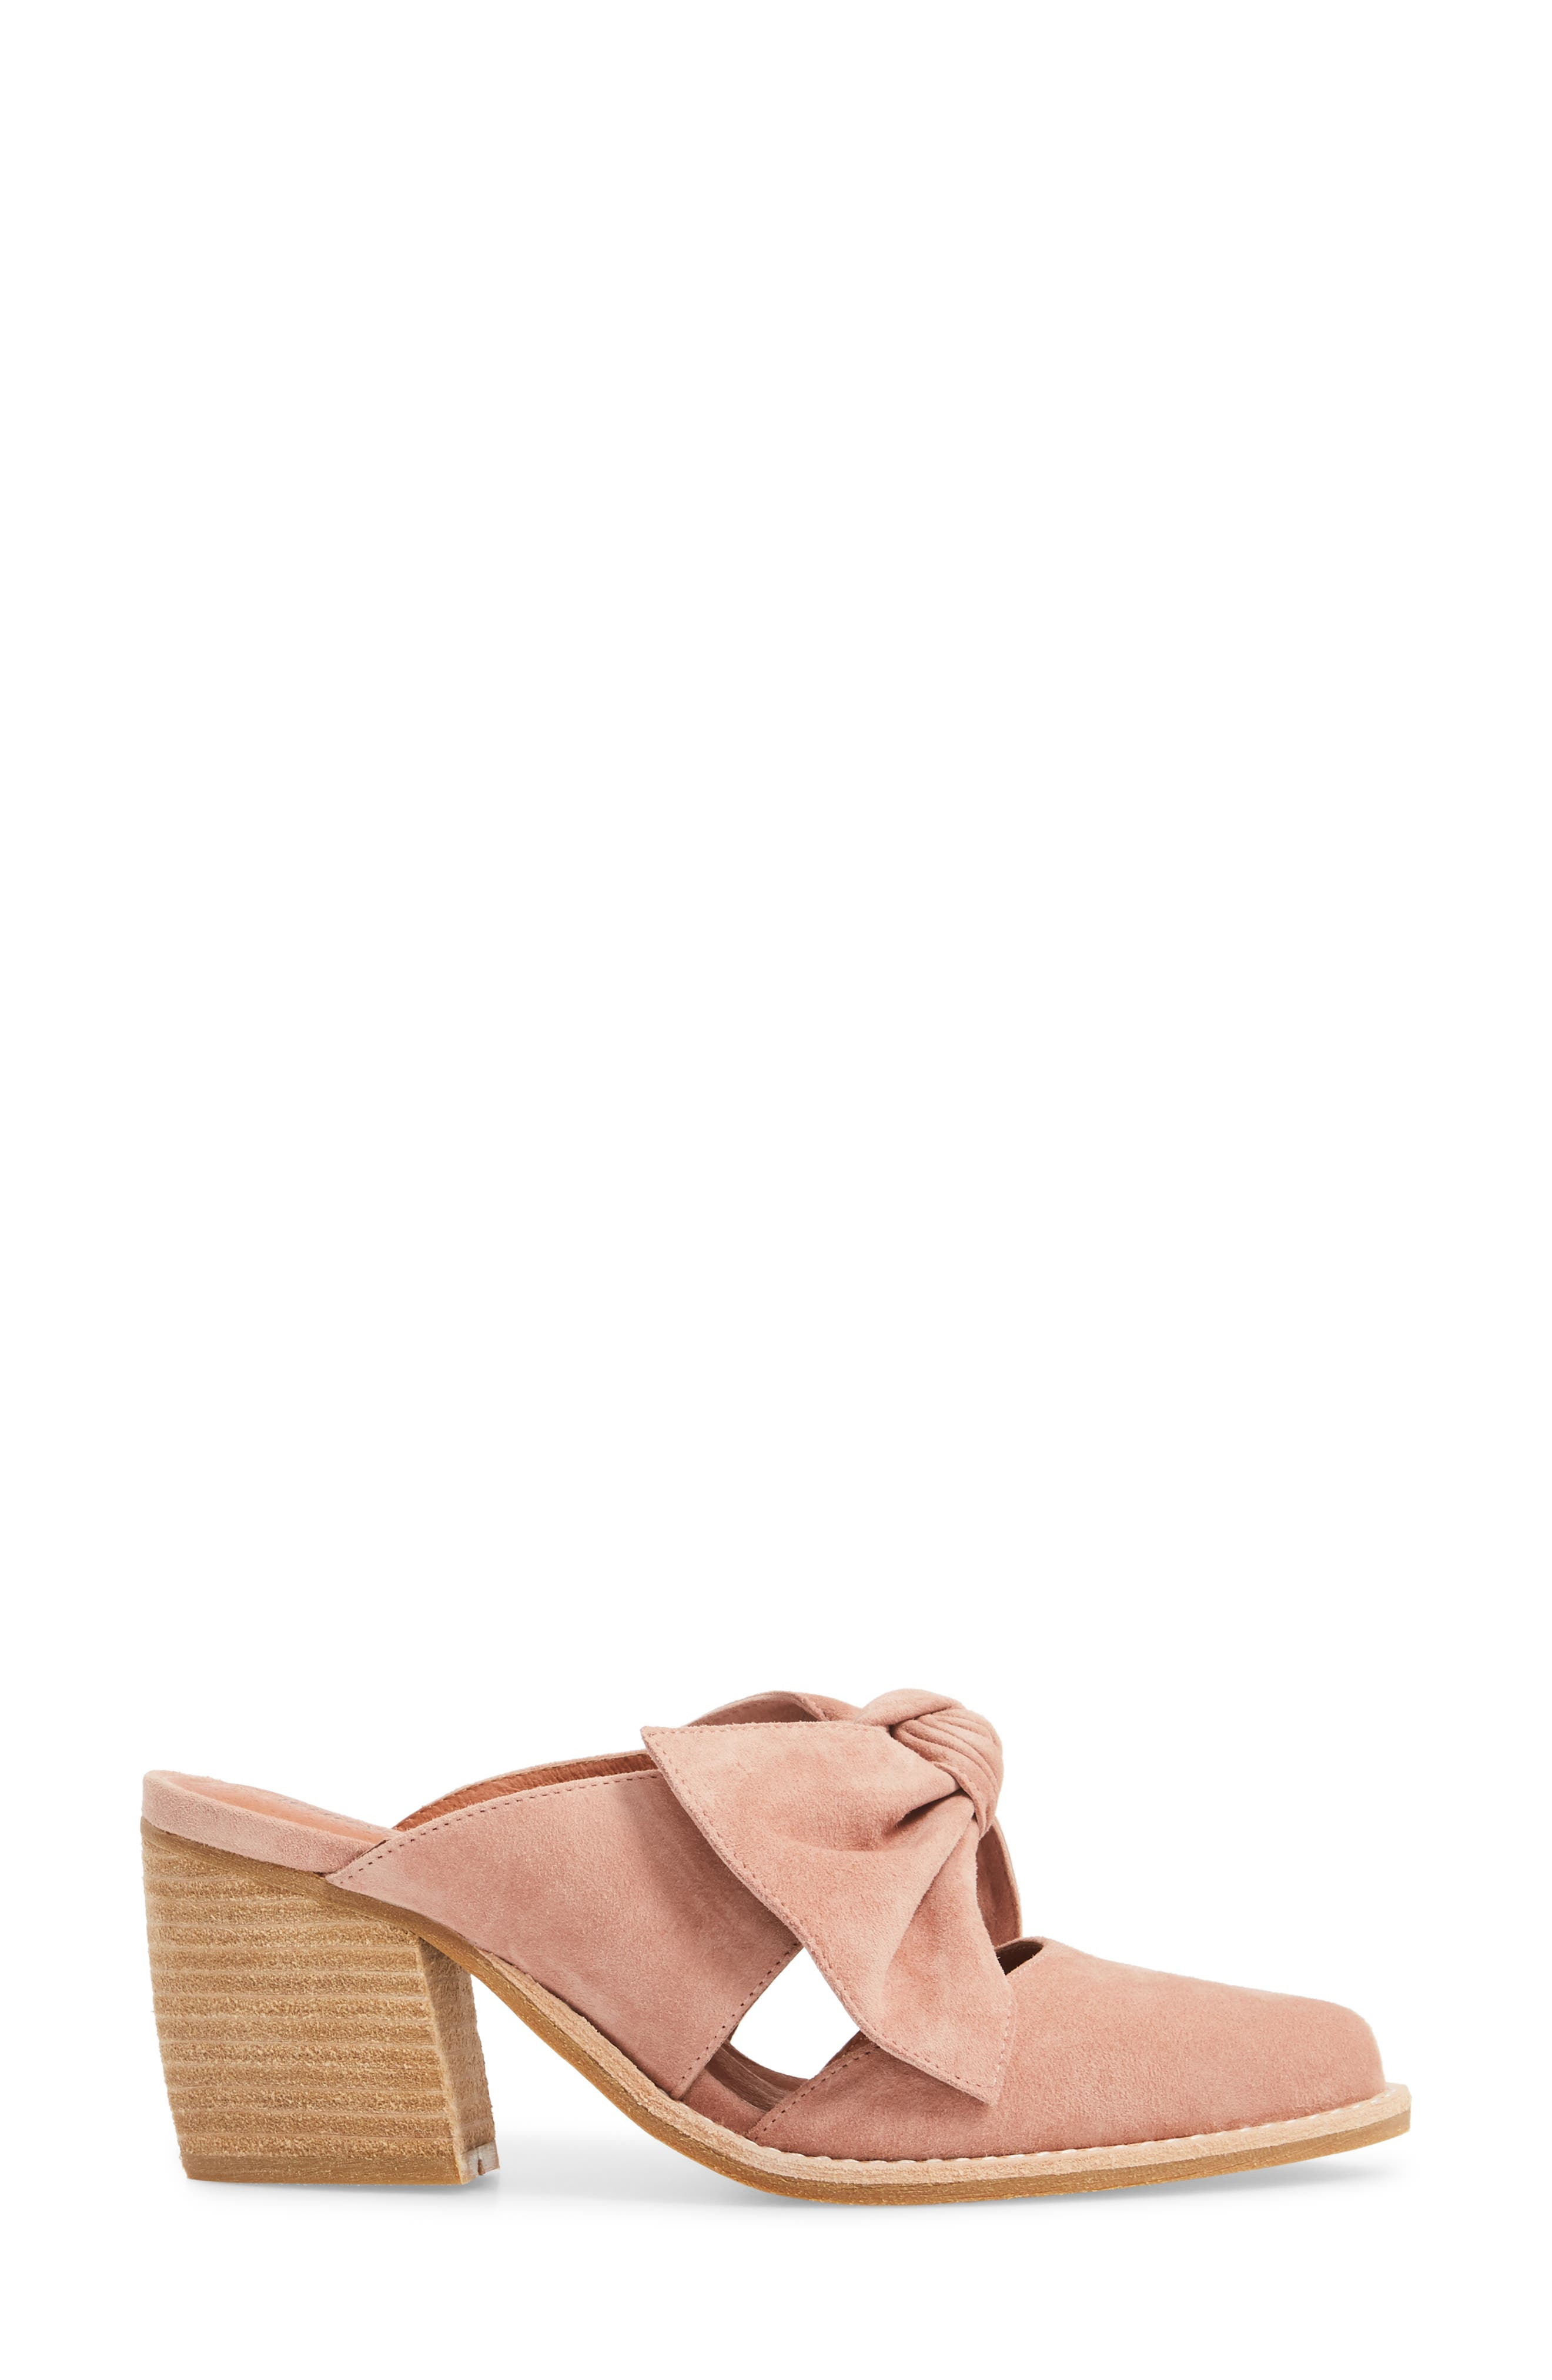 Cyrus Knotted Mary Jane Mule,                             Alternate thumbnail 3, color,                             Blush Suede